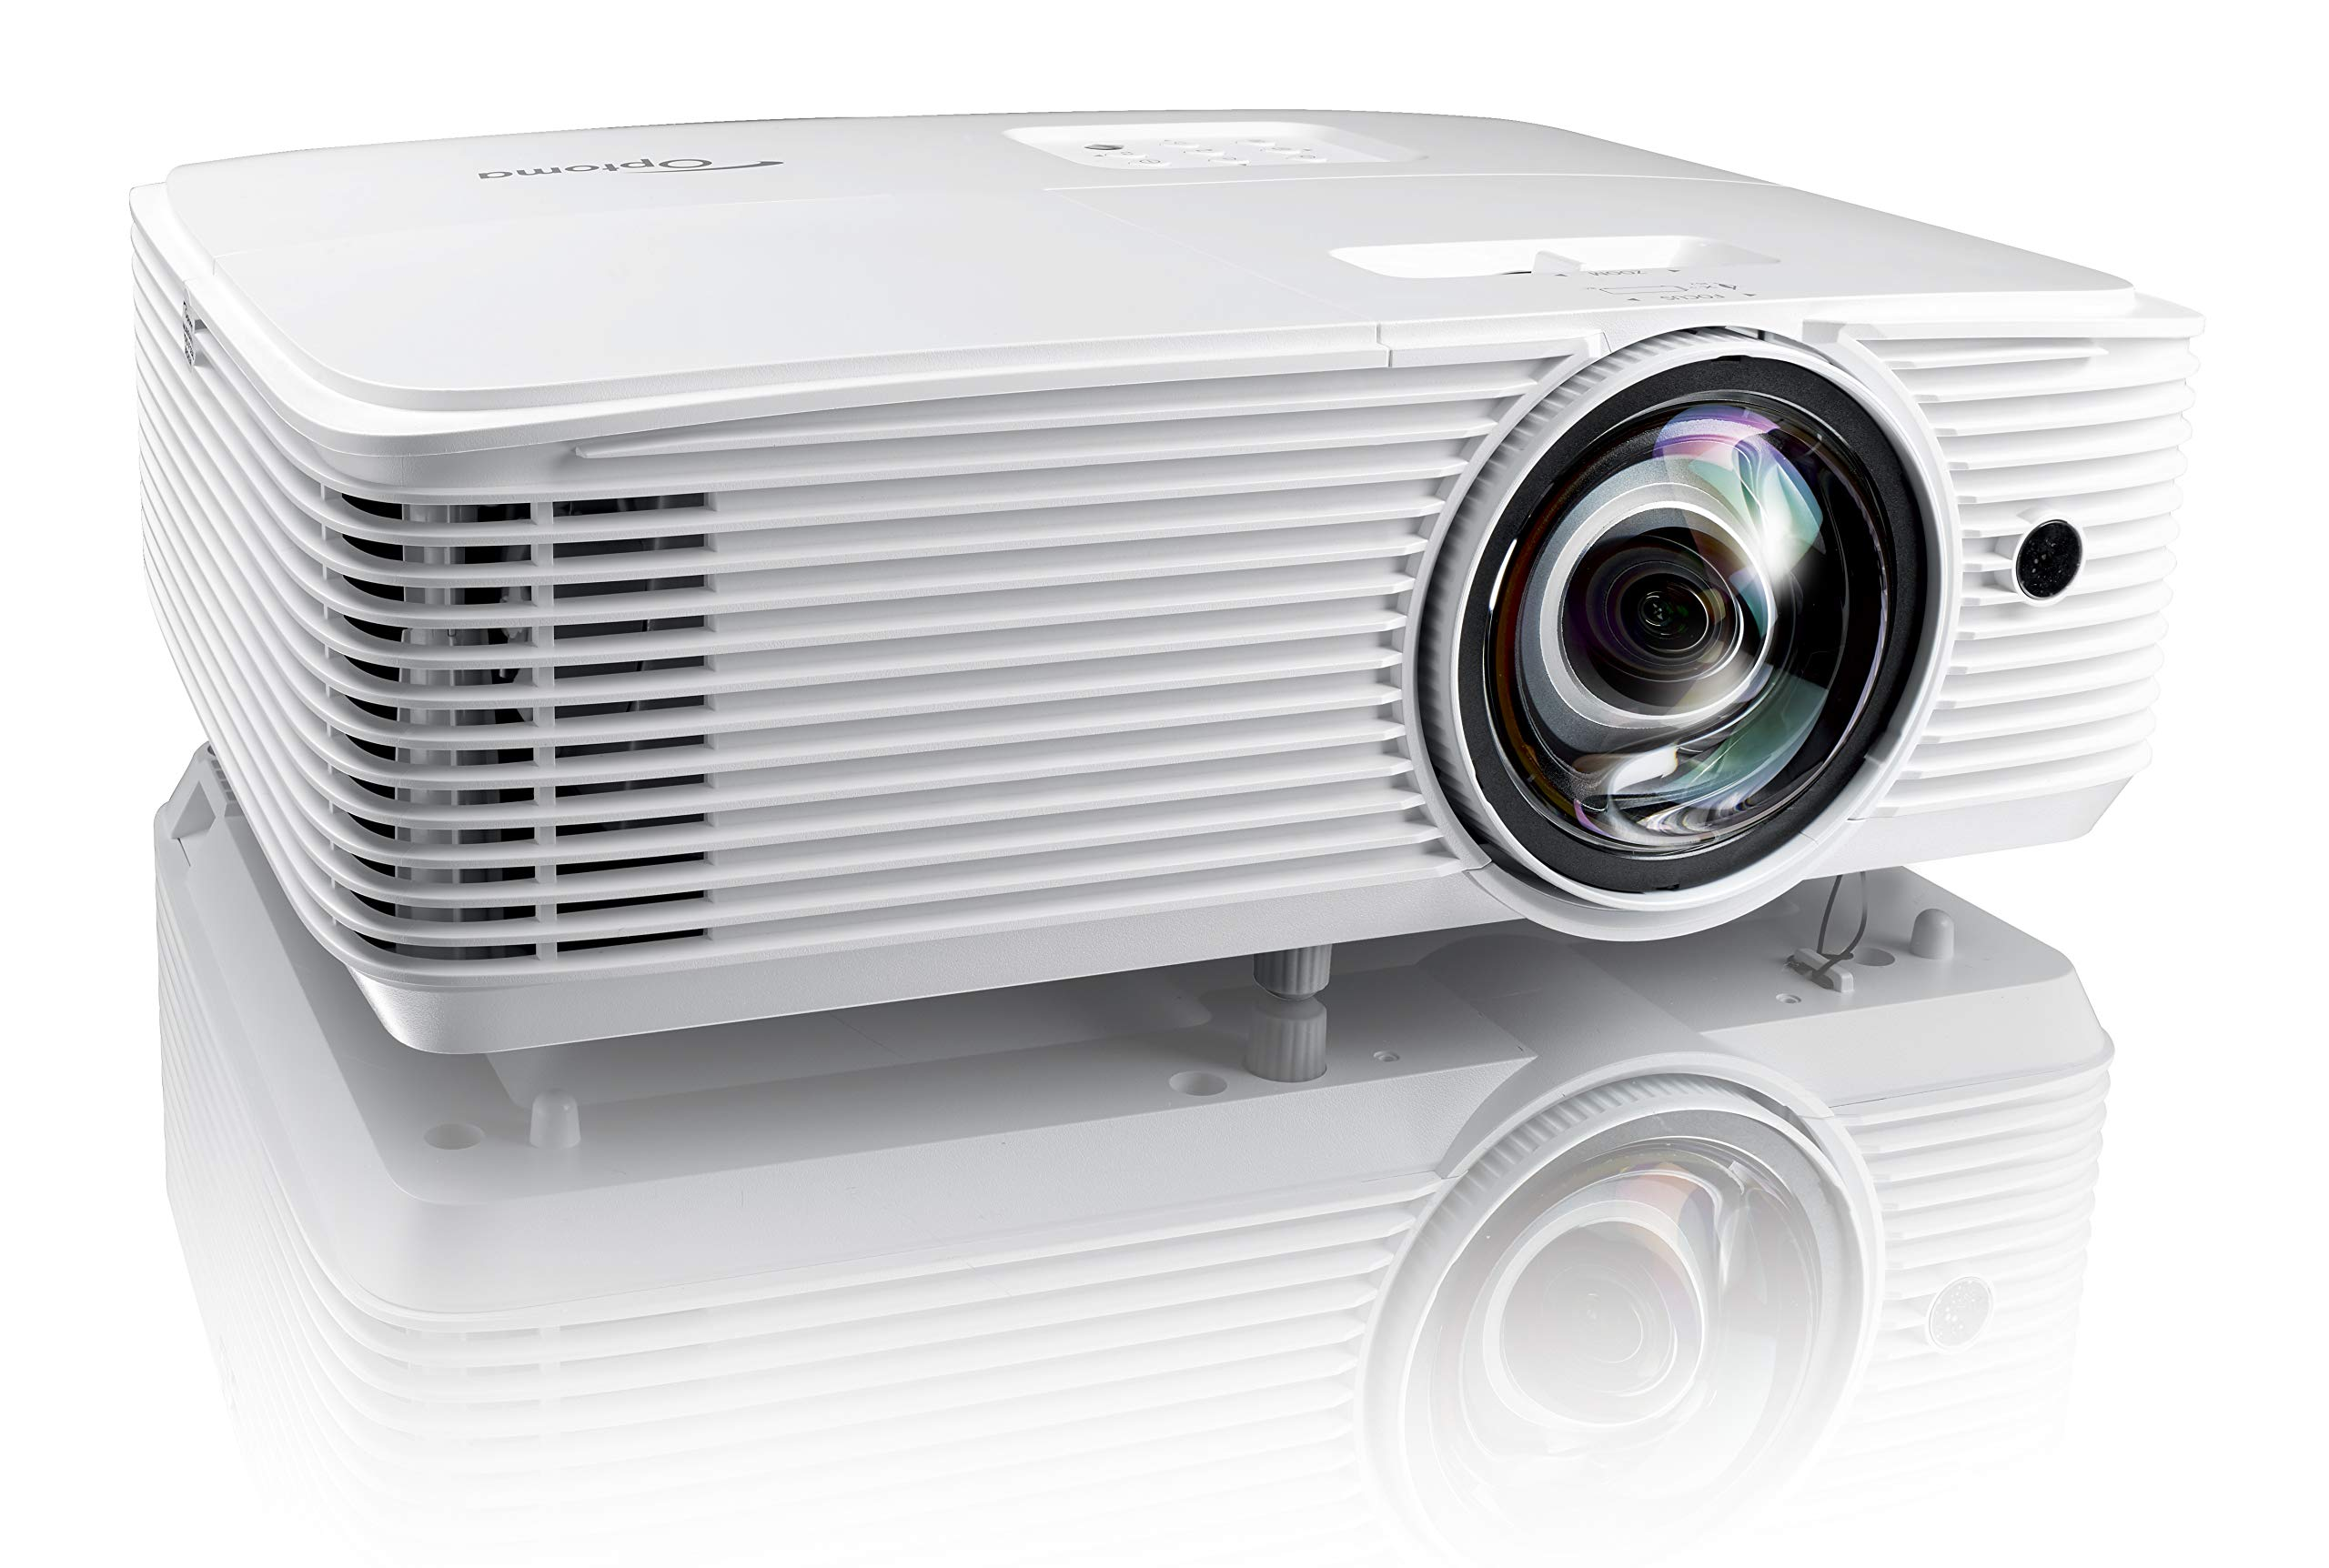 Optoma EH412ST Short Throw 1080P DLP Professional Projector | Super Bright 4000 Lumens | Business Presentations, Classrooms, or Meeting Rooms | 15,000 hour lamp life | Speaker Built In | Portable Size by Optoma (Image #1)